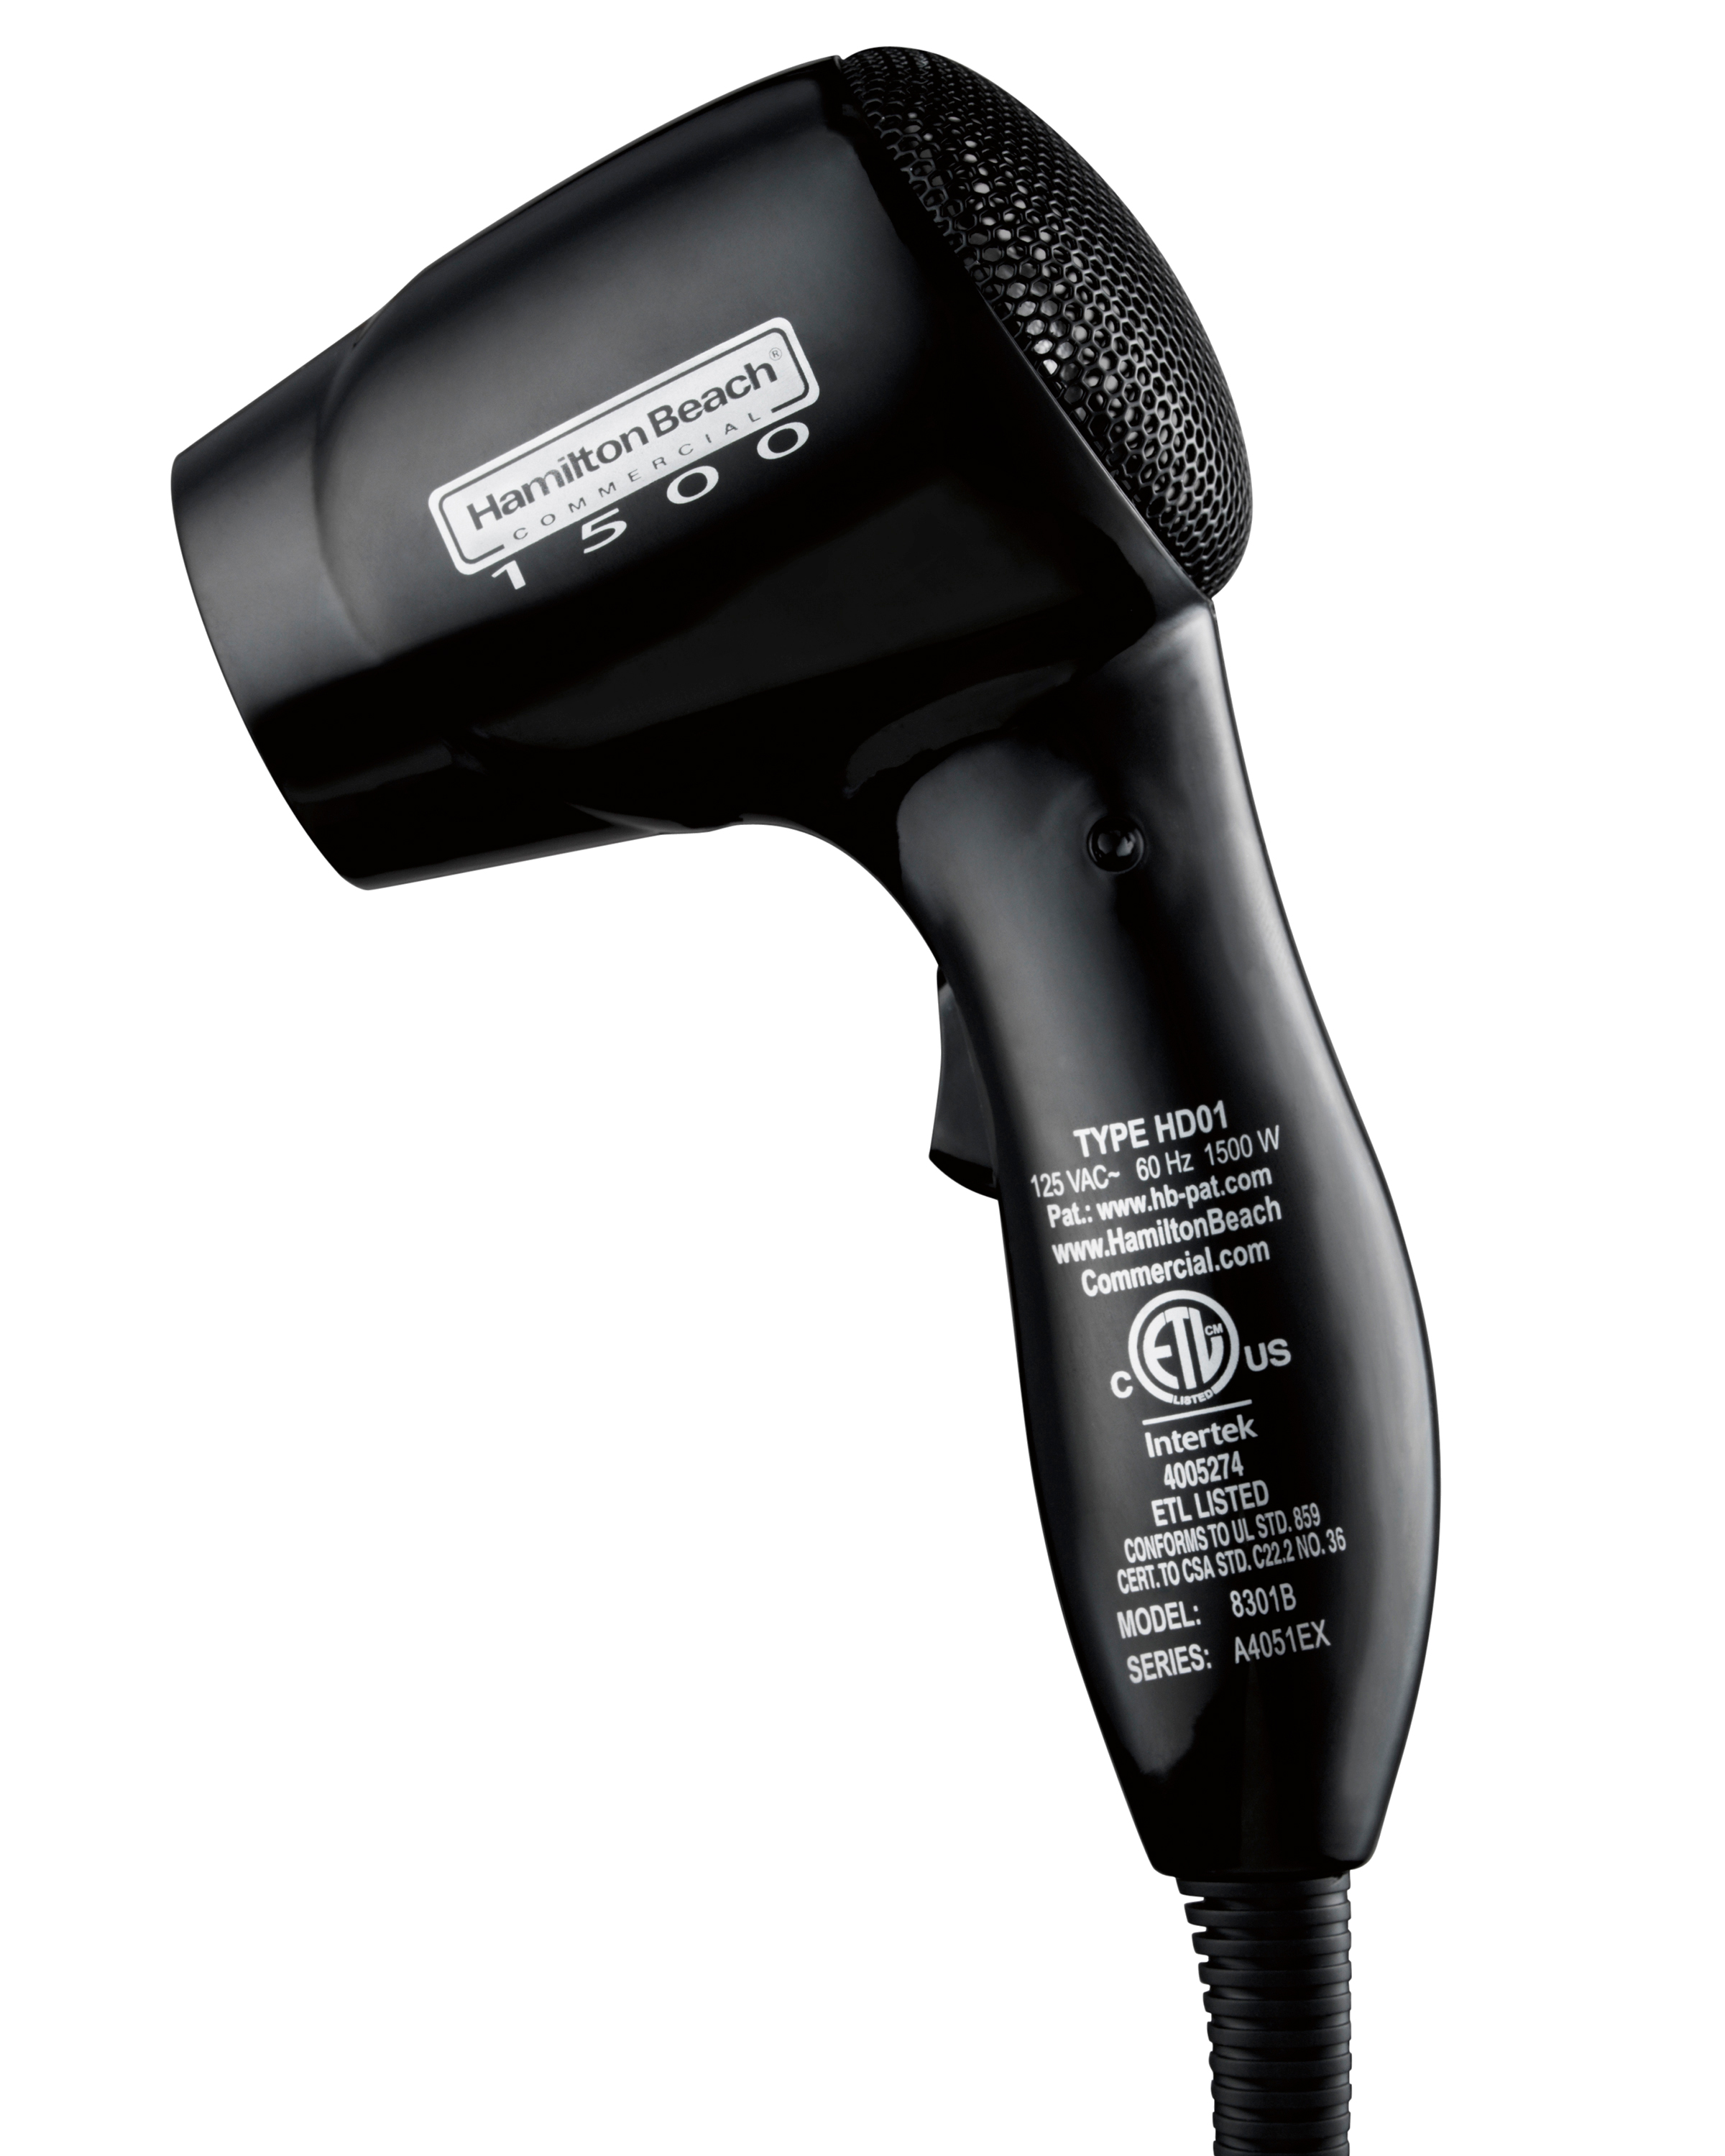 Hamilton Beach 8301B hair dryer